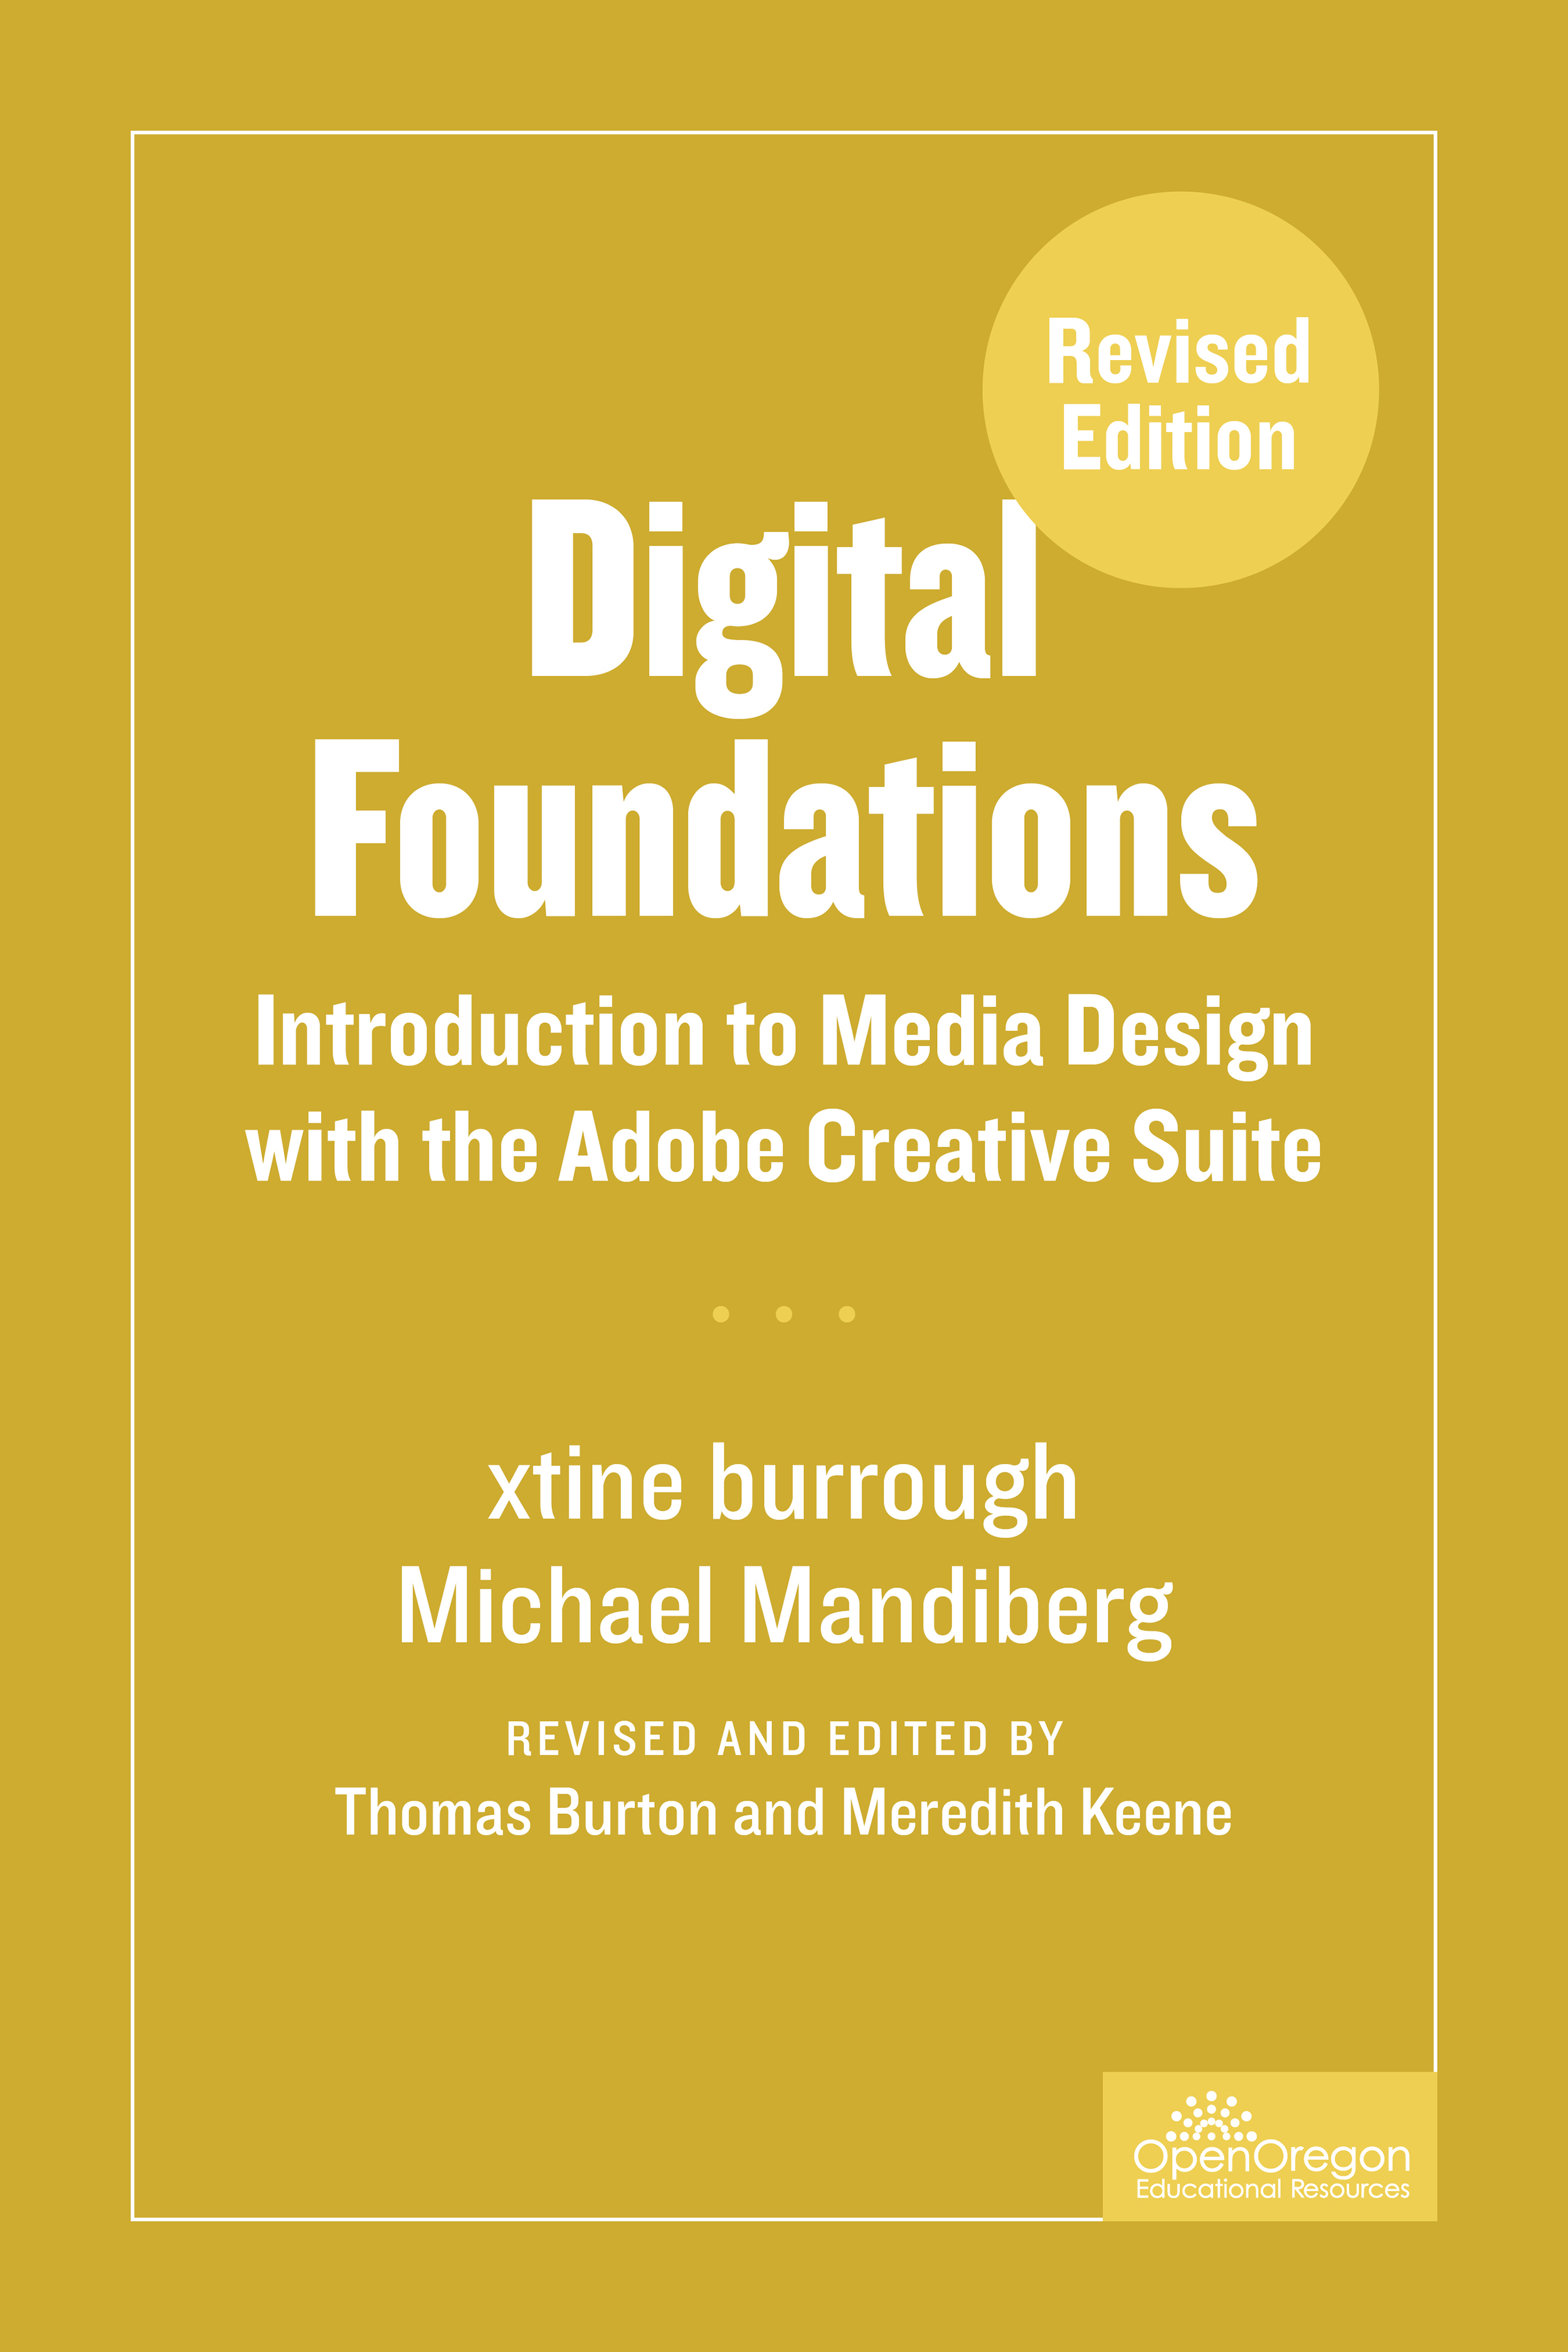 Digital Foundations: Introduction to Media Design with the Adobe Creative Cloud